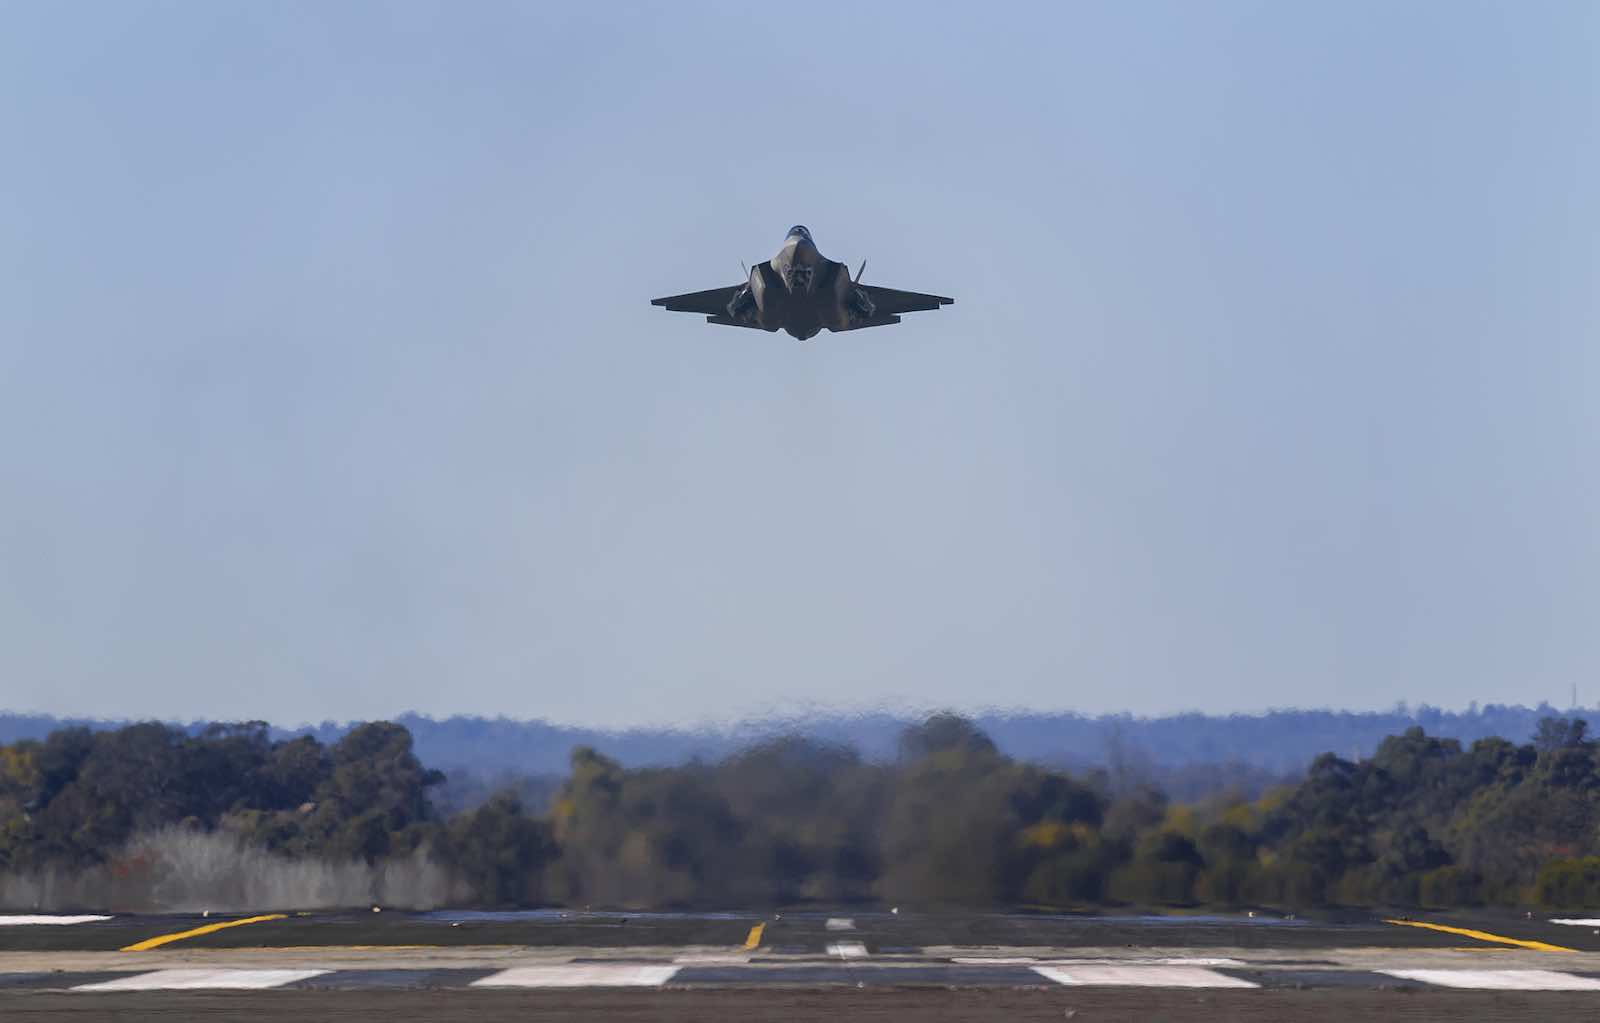 An F-35A Joint Strike Fighter on approach at RAAF Base Richmond in July (Photo: Department of Defence)